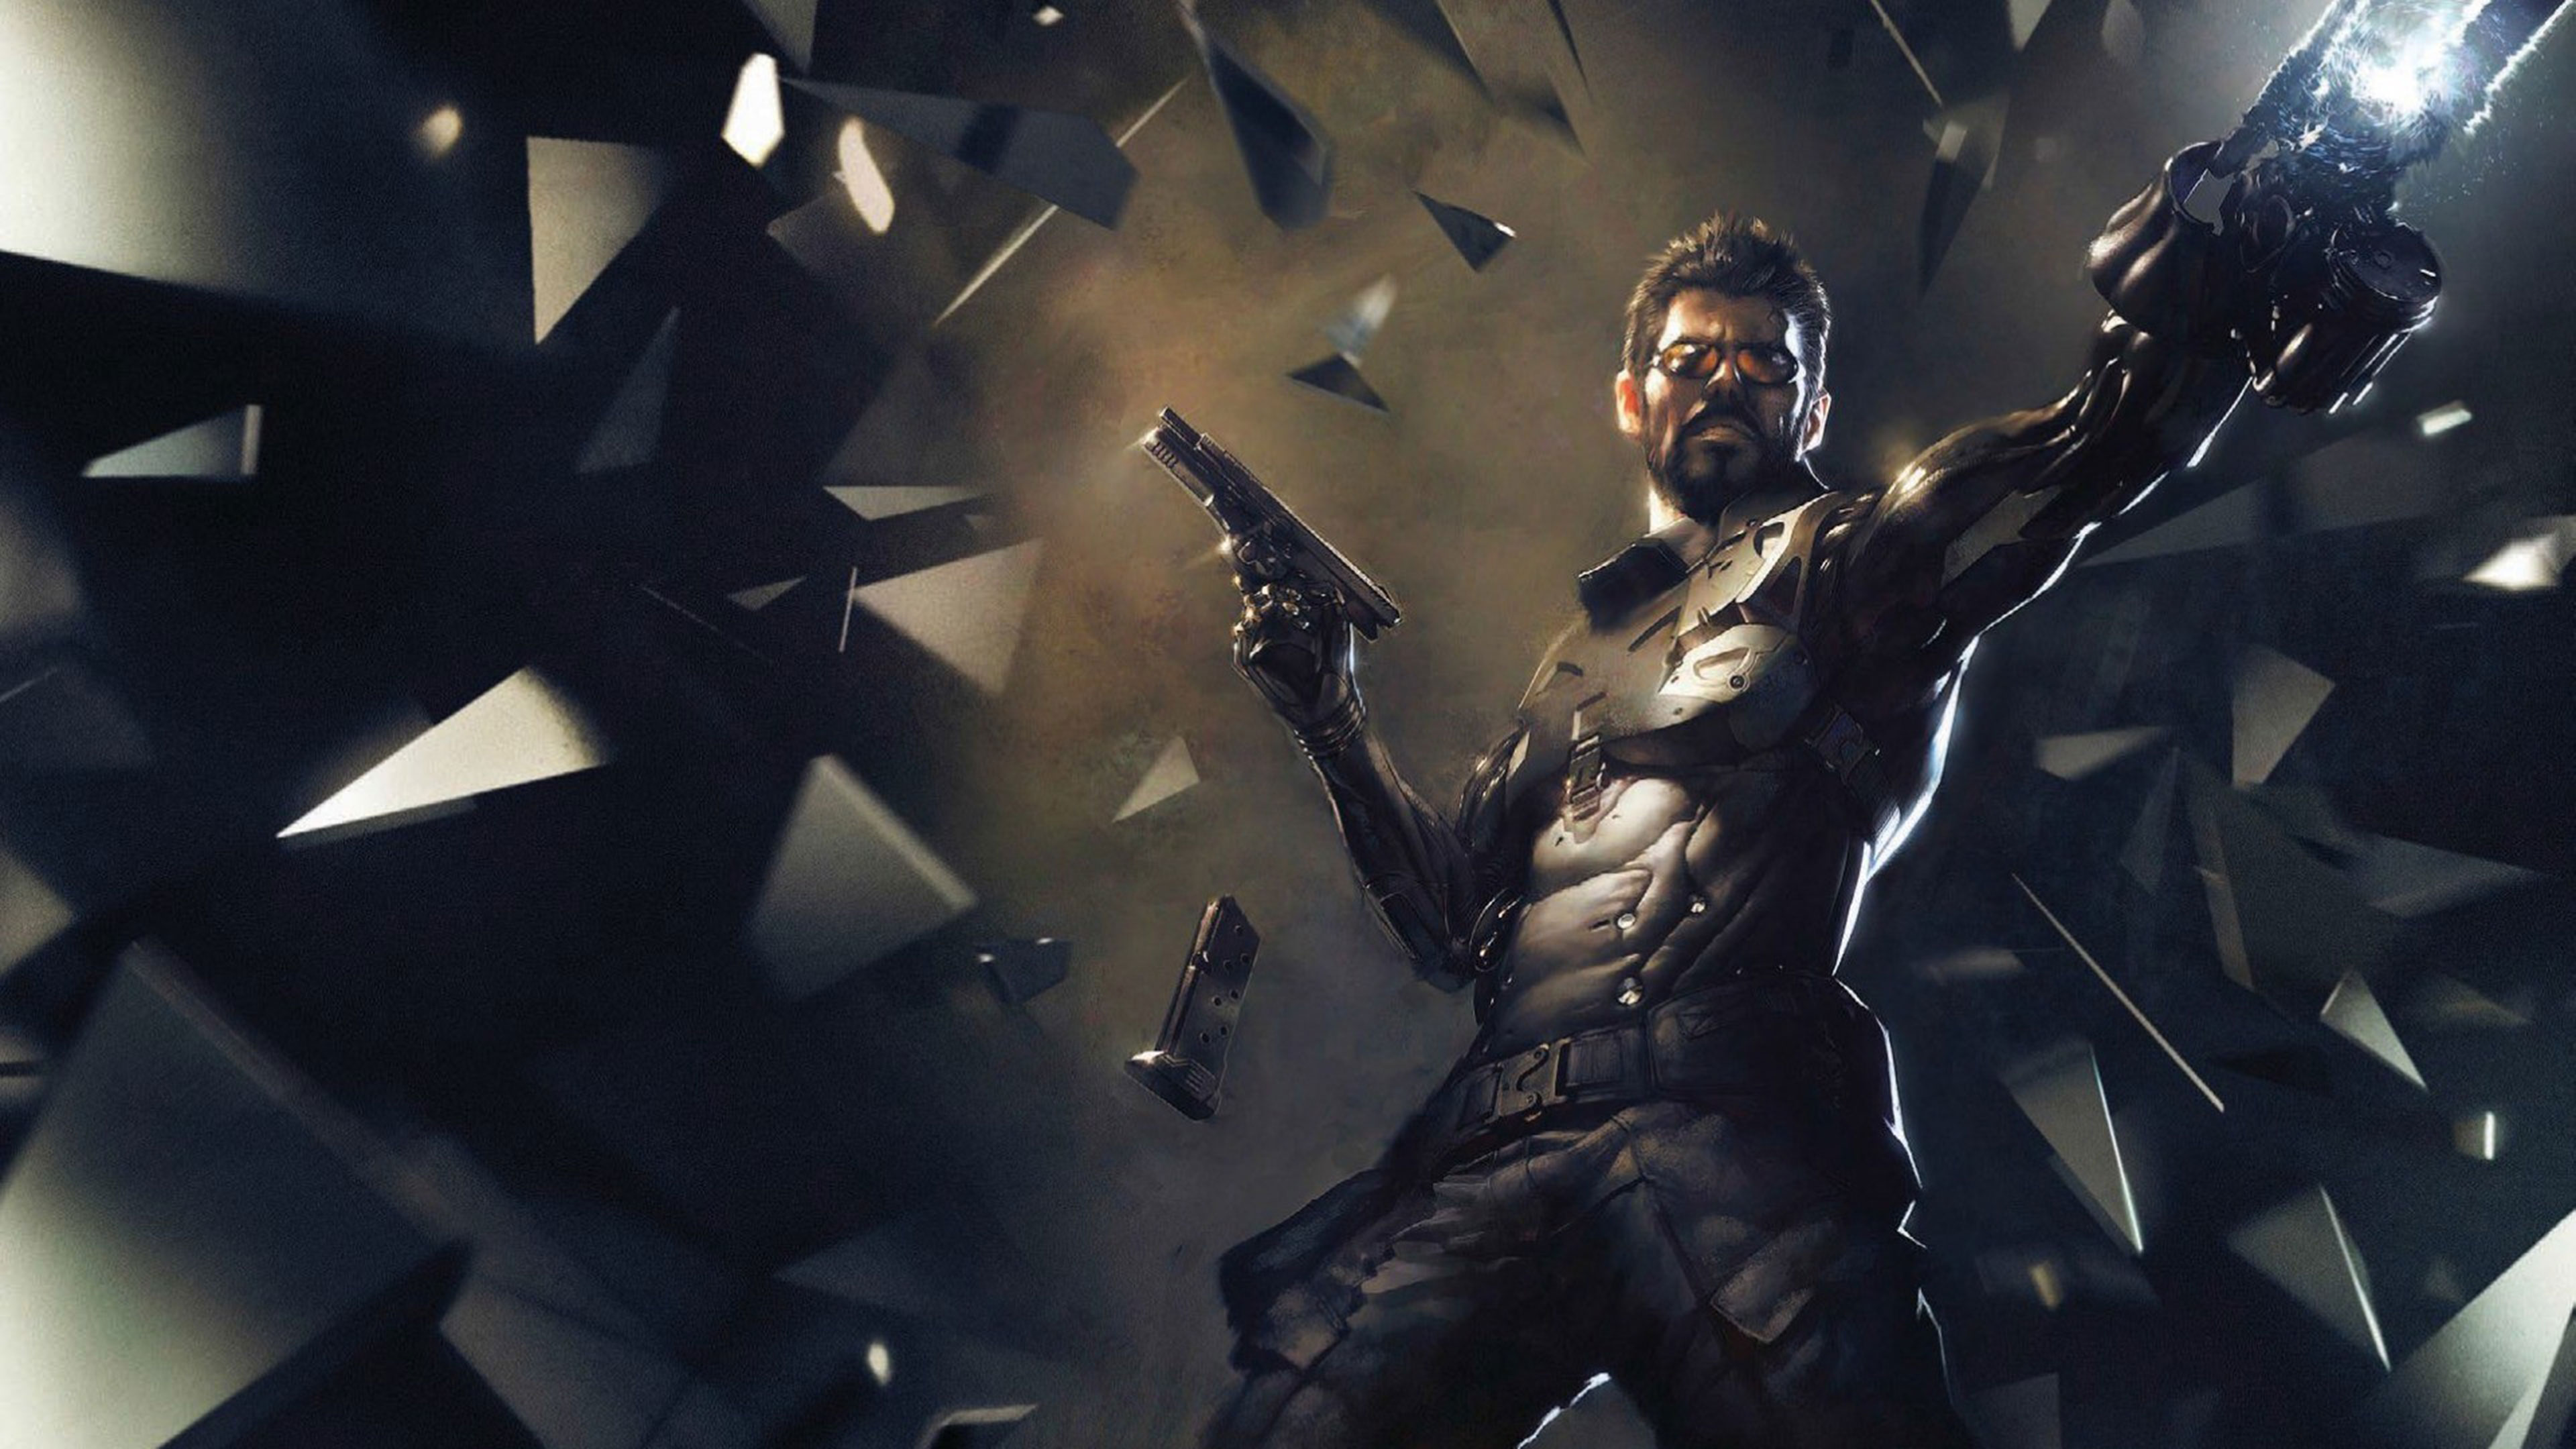 Deus Ex Mankind Divided 4K Wallpaper